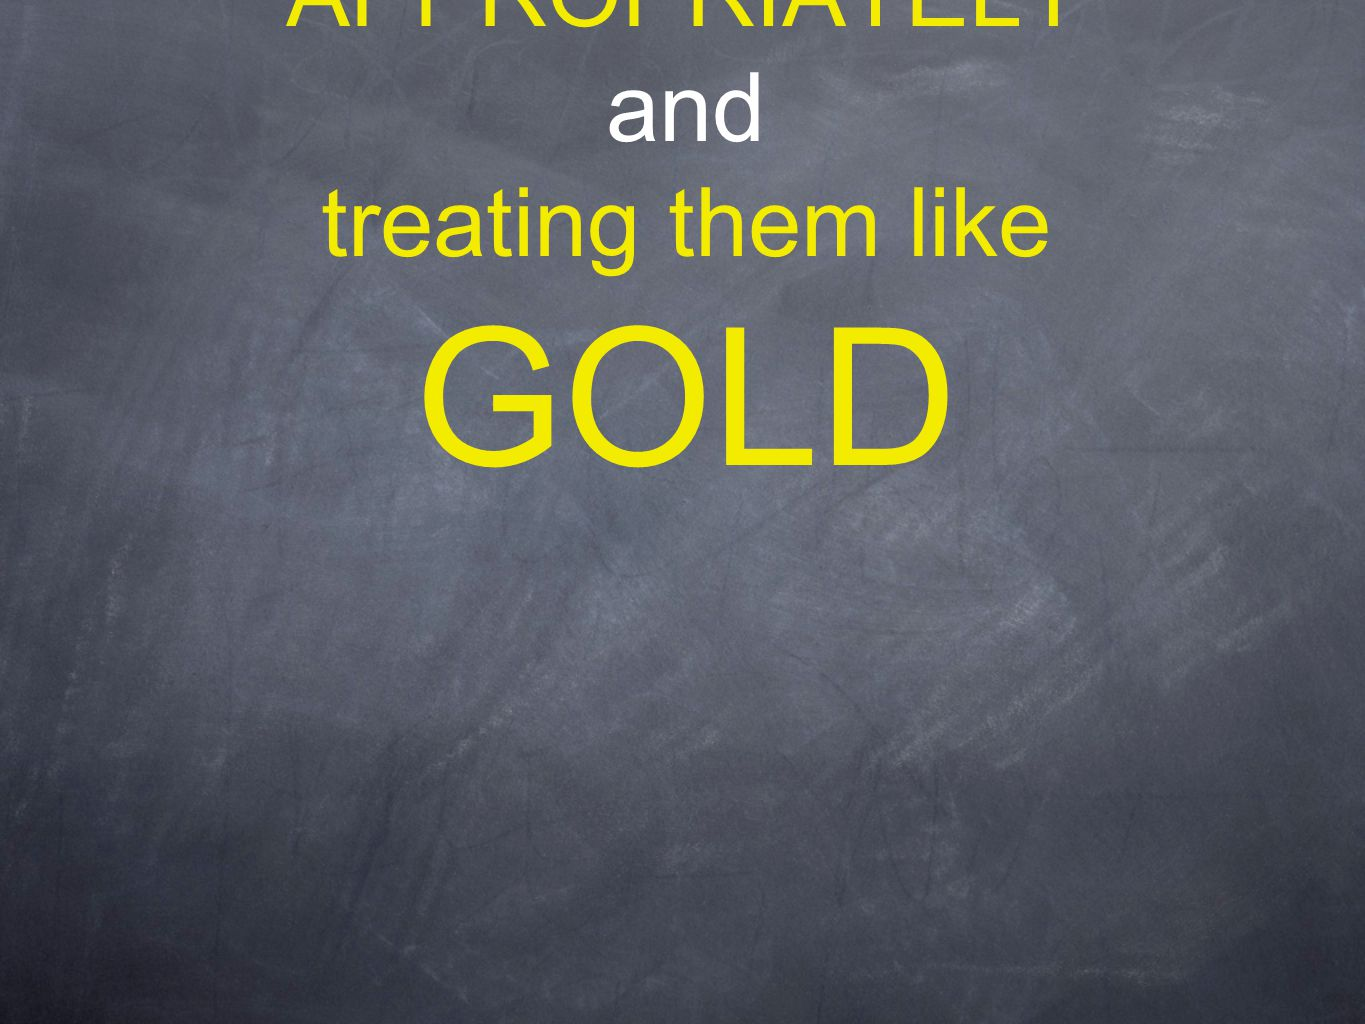 You'll get even better results by PAYING THEM APPROPRIATELY and treating them like GOLD